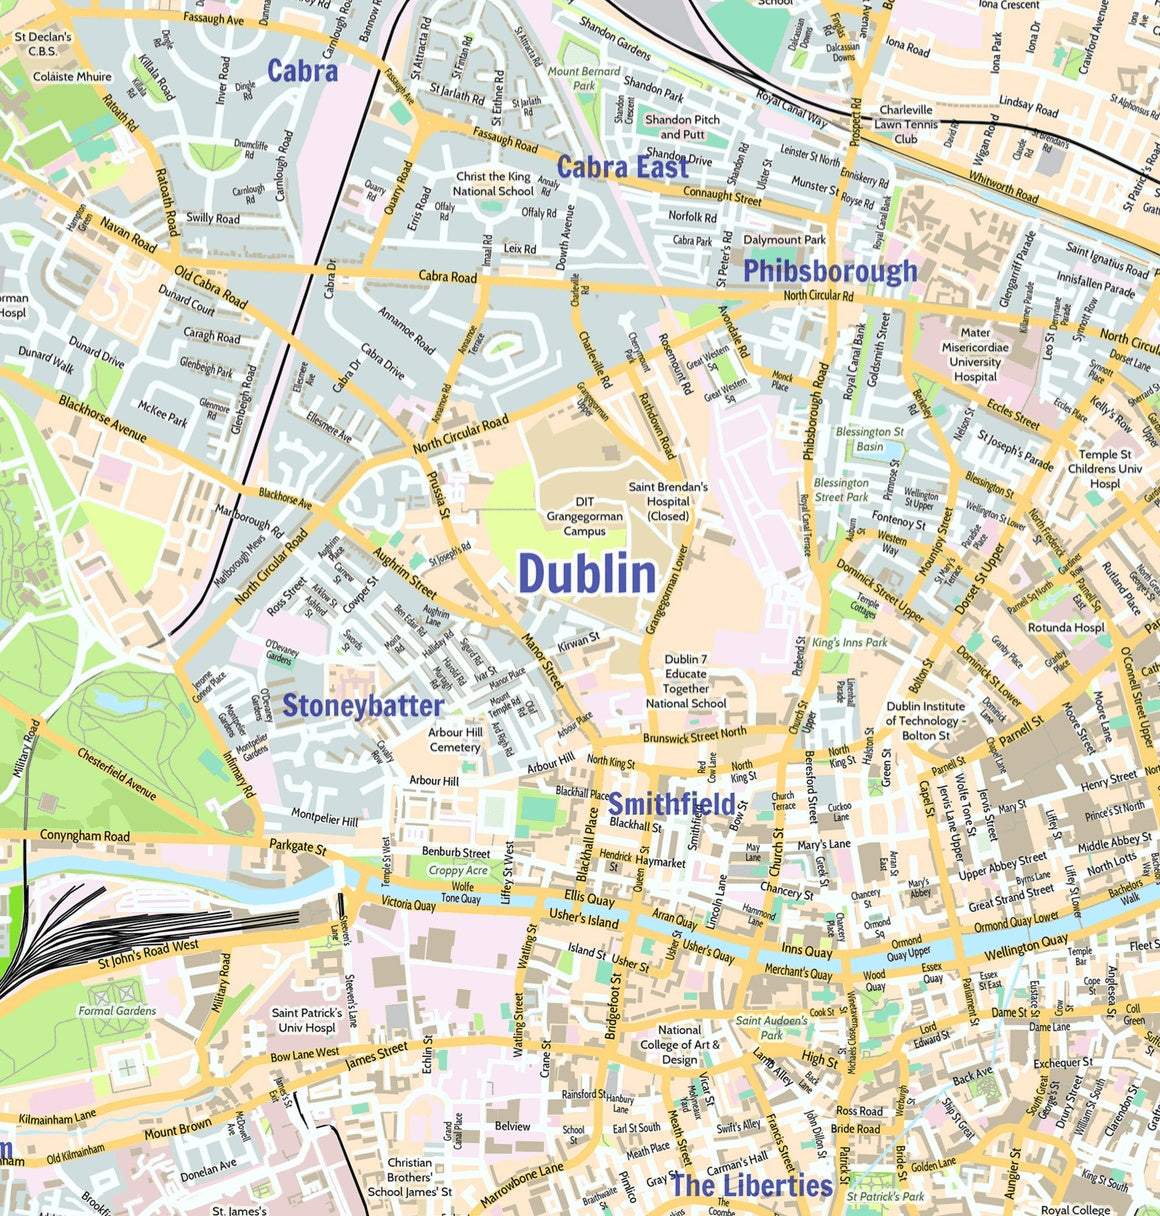 Map Of Dublin Ireland Dublin City Map   Laminated Wall Map of Dublin, Ireland